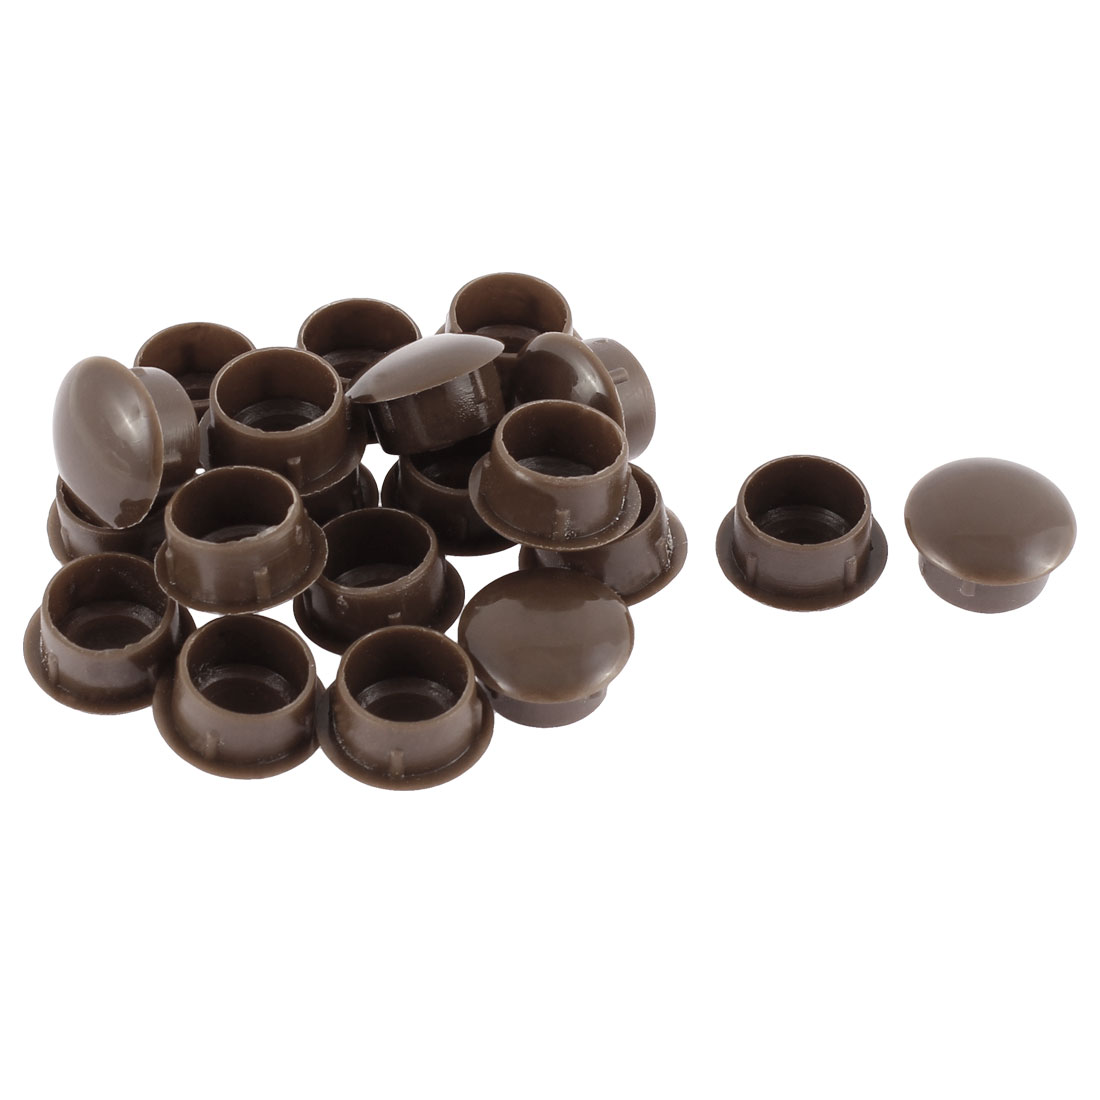 Furniture Plastic 14mm Hole Drill Cover Plugs Flush Type Coffee Color 20pcs